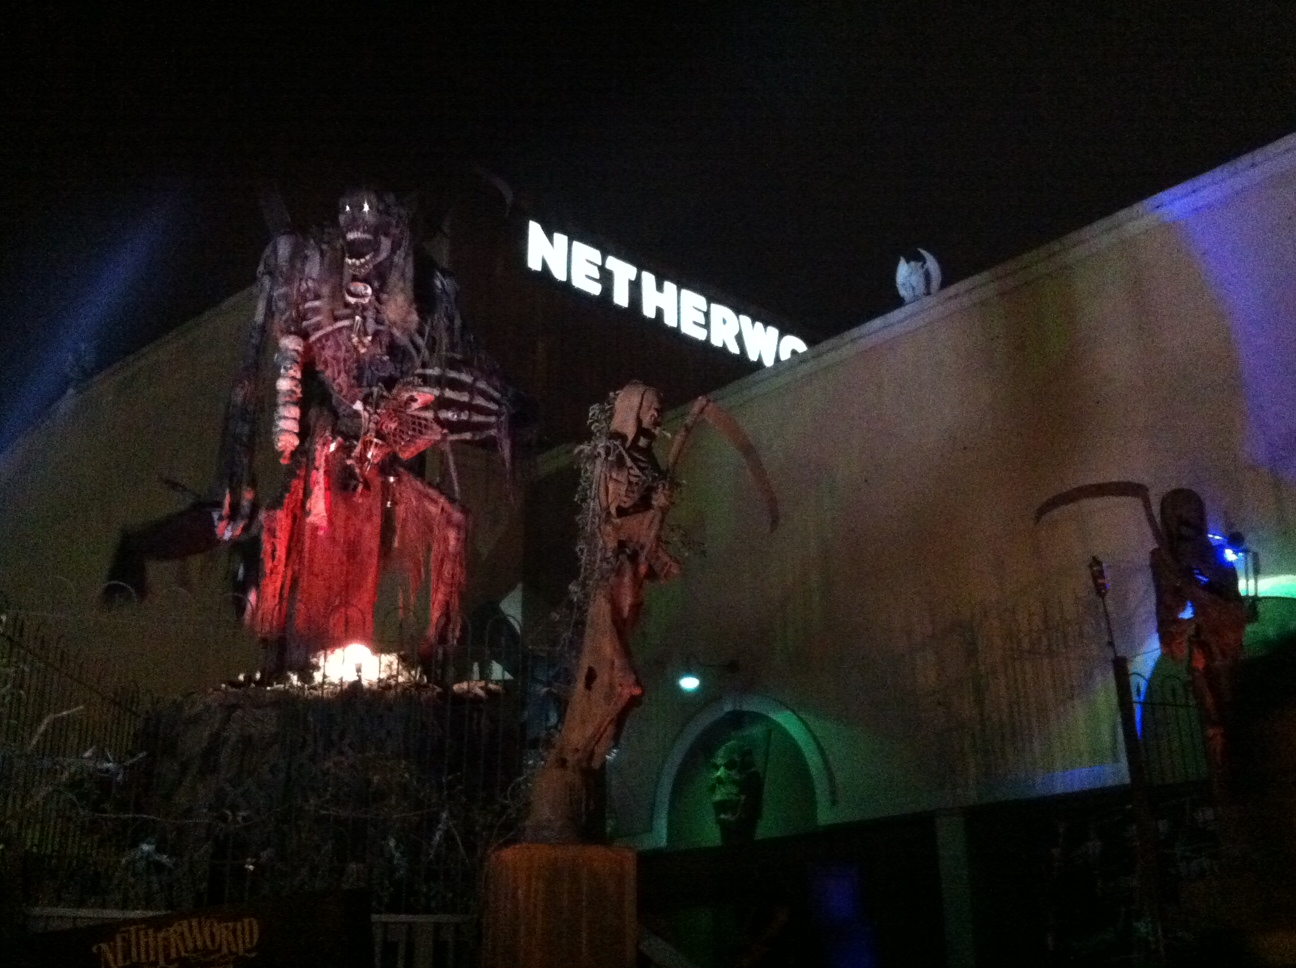 If you are looking for an exiting and challenging Escape Rooms in Atlanta then check out Escape the Netherworld. We have 3 Escape Games that are exciting and fun. Book now!